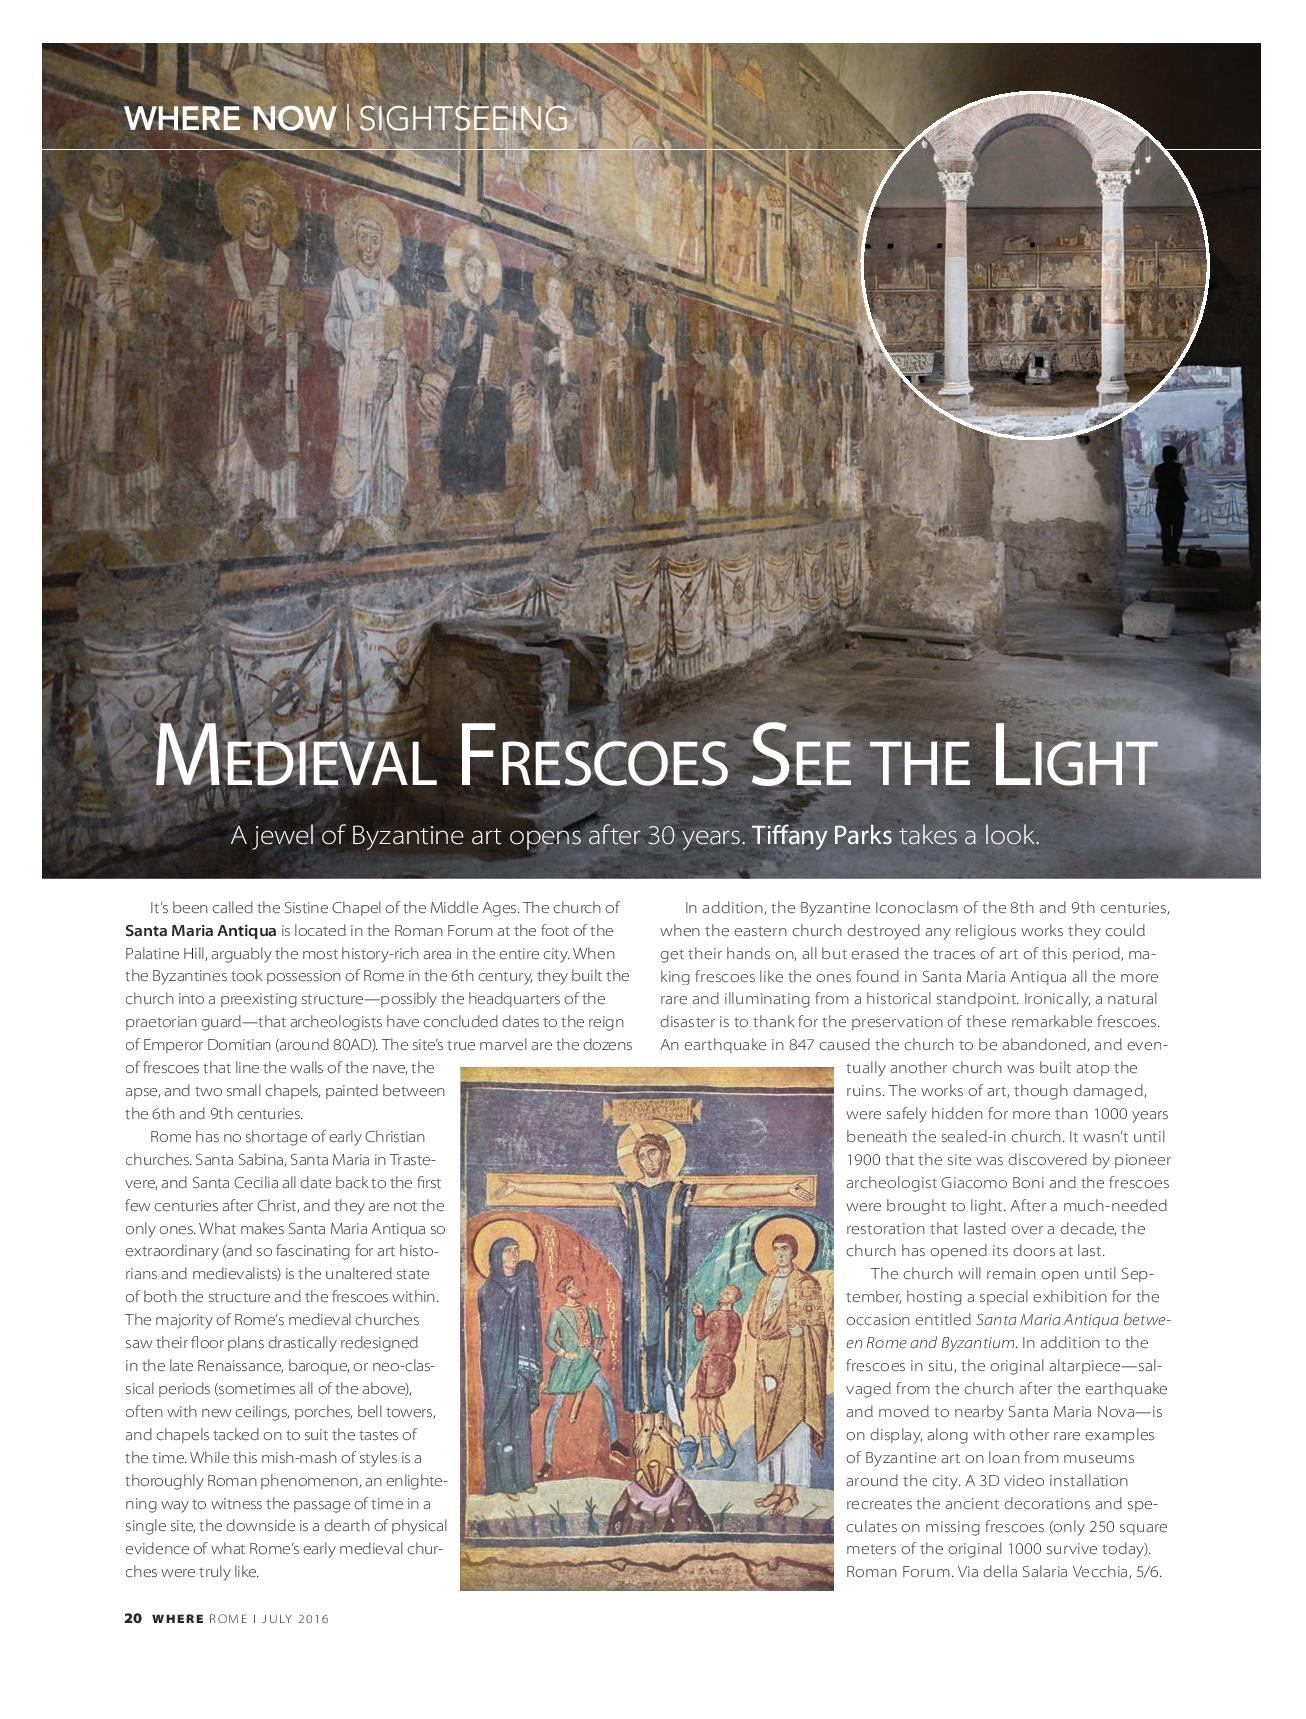 Medieval-Frescoes-See-the-Light-Where-Rome.jpg